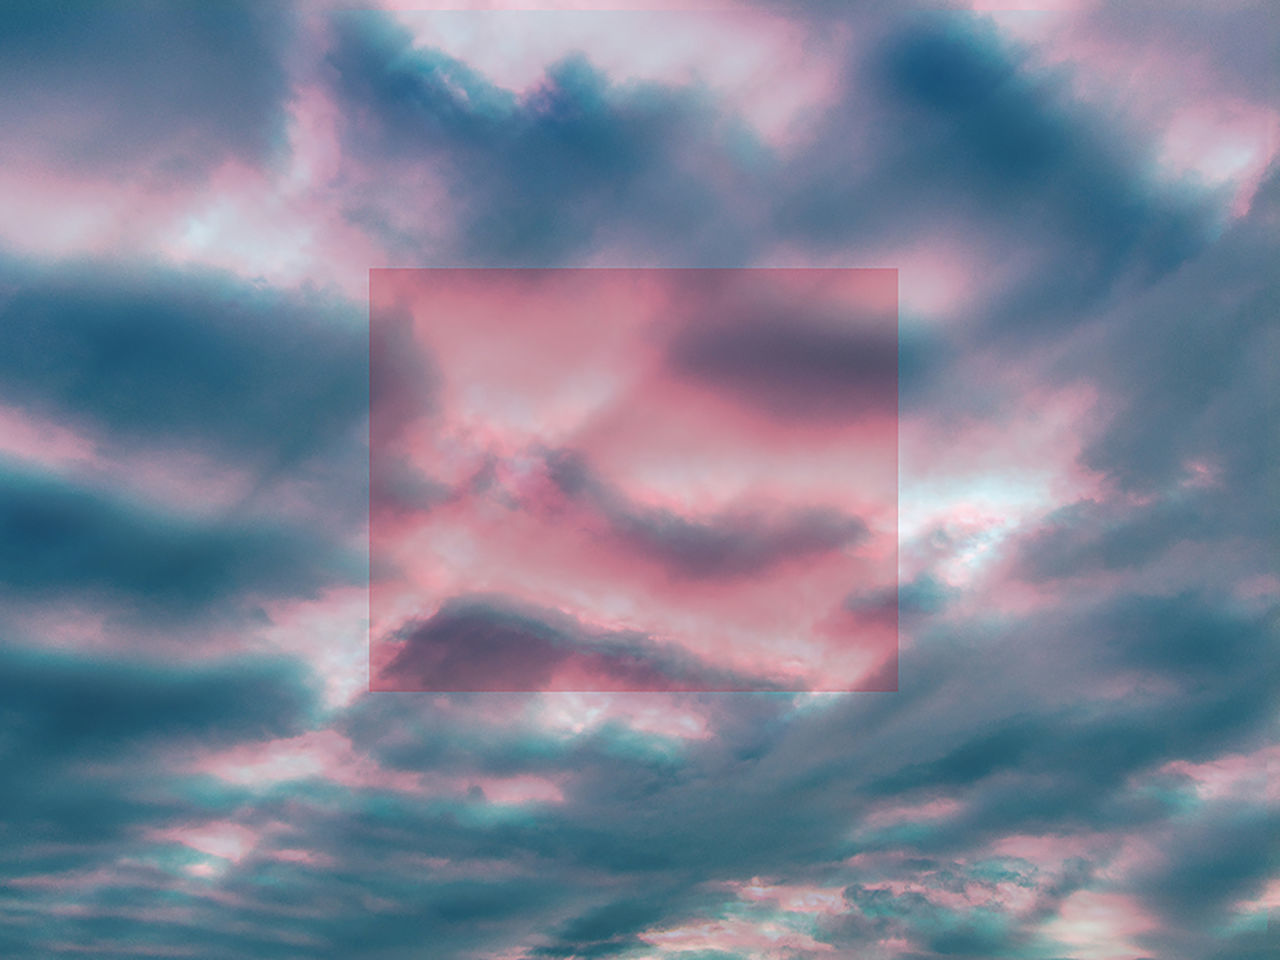 cloud - sky, sky, sunset, cloudscape, pink color, abstract, multi colored, no people, low angle view, backgrounds, sky only, nature, outdoors, beauty in nature, storm cloud, close-up, day